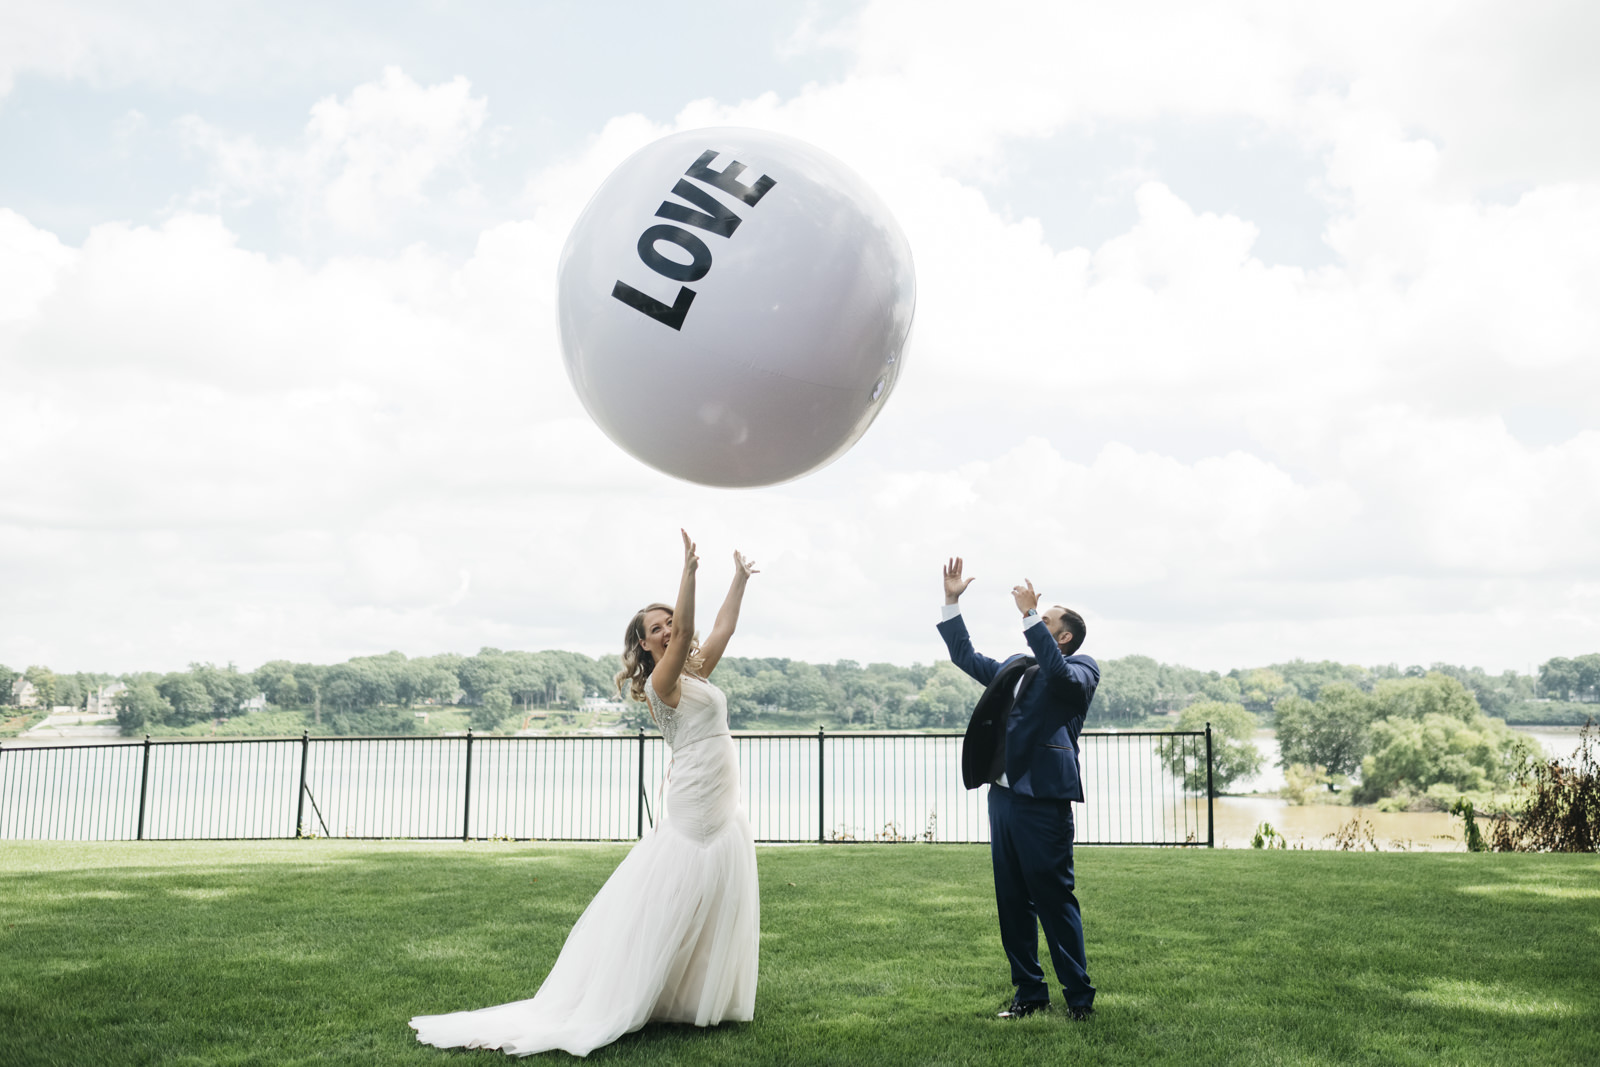 Bride and groom have fun with a giant love ball at their wedding.